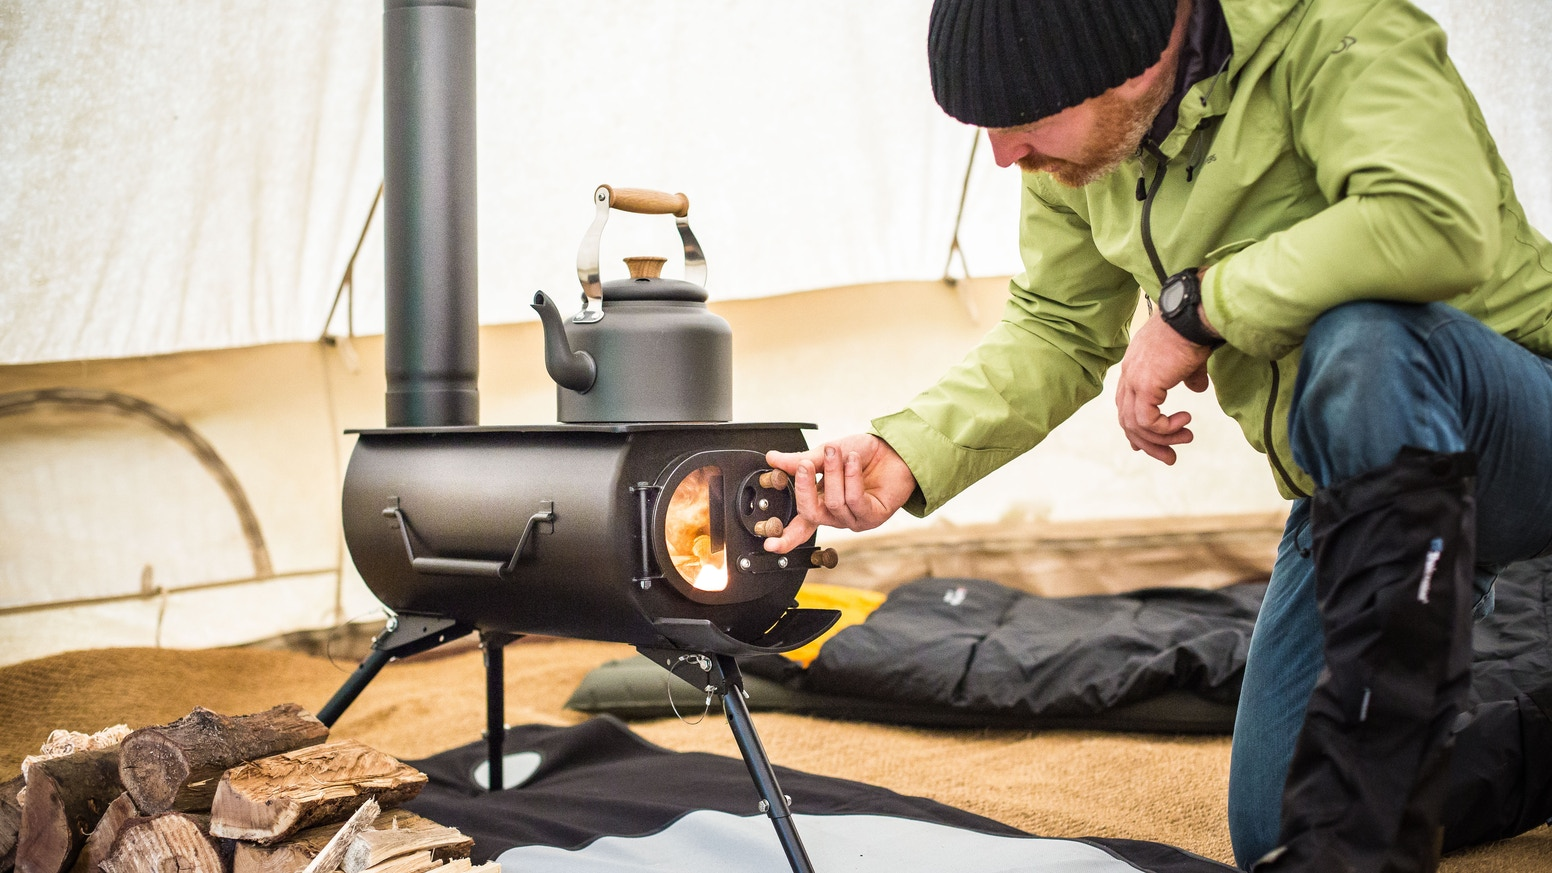 A lightweight, folding stove with a flue for heating and cooking in tents, sheds, vans and the outdoors. Join the woodfuel revolution!